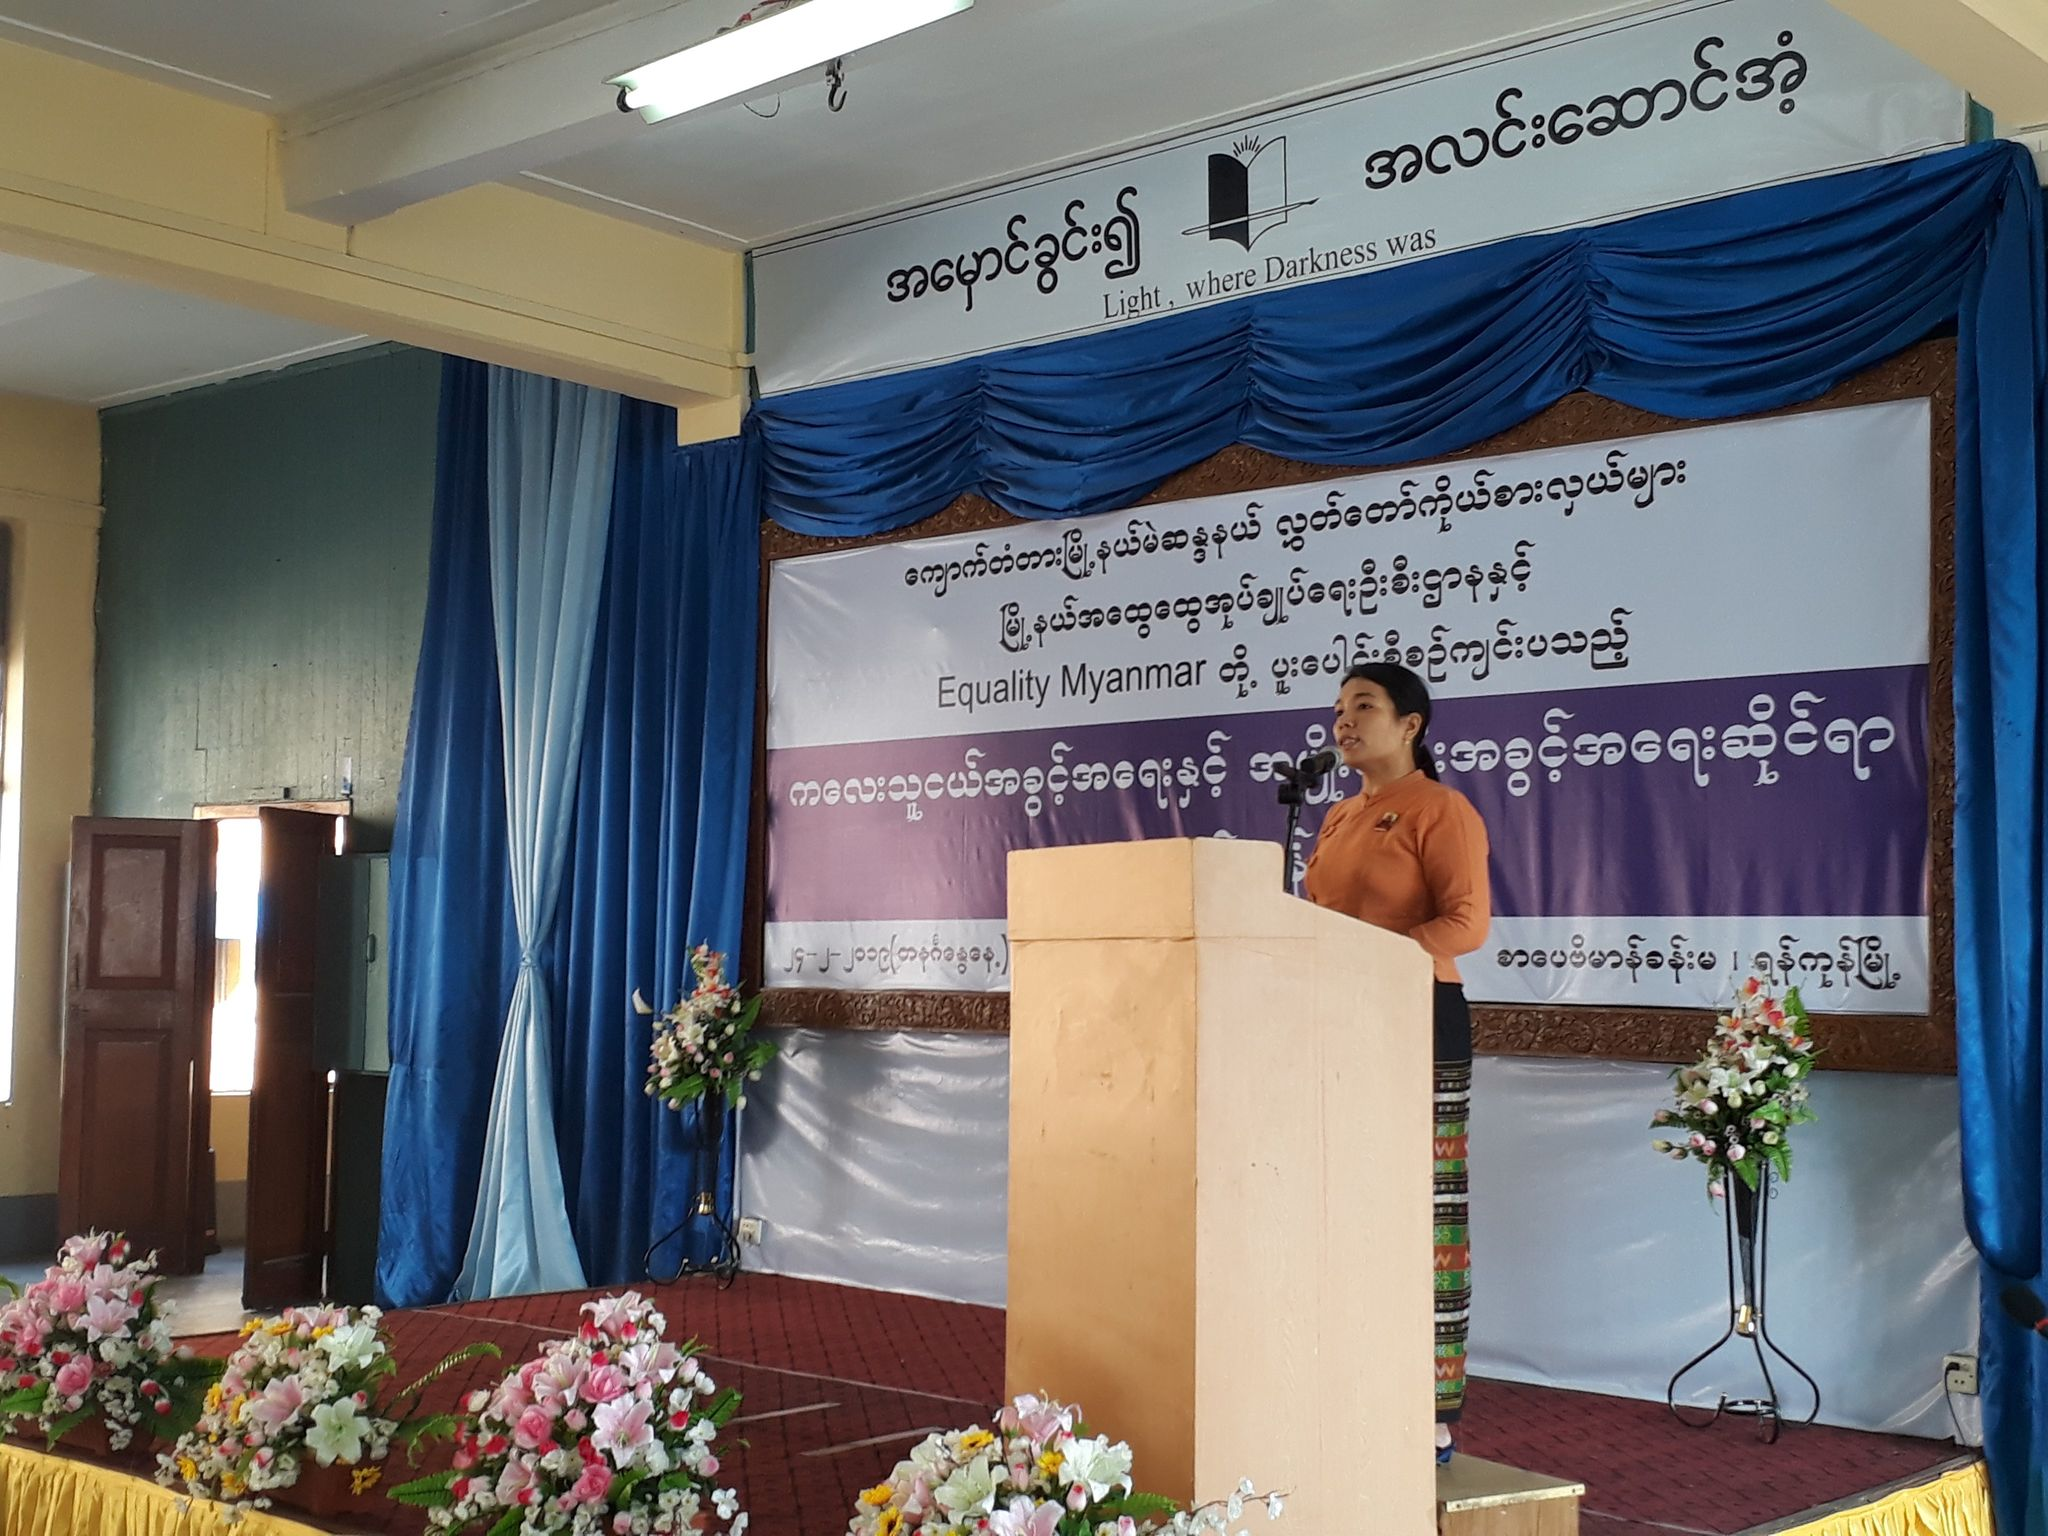 Ma Kyi Pyar speaking at an event